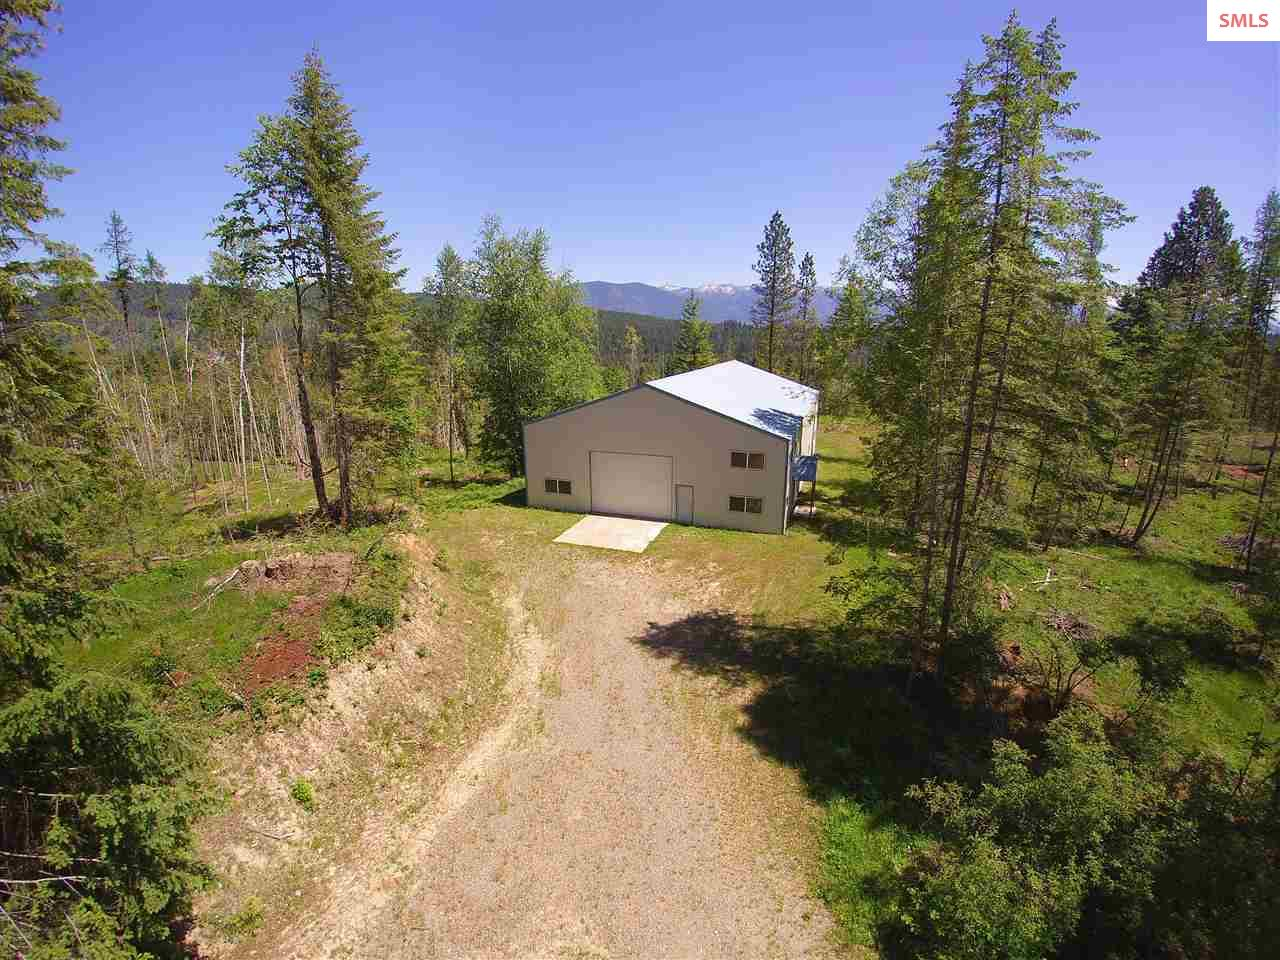 Realty Plus Sandpoint Real Estate In Sandpoint Idaho